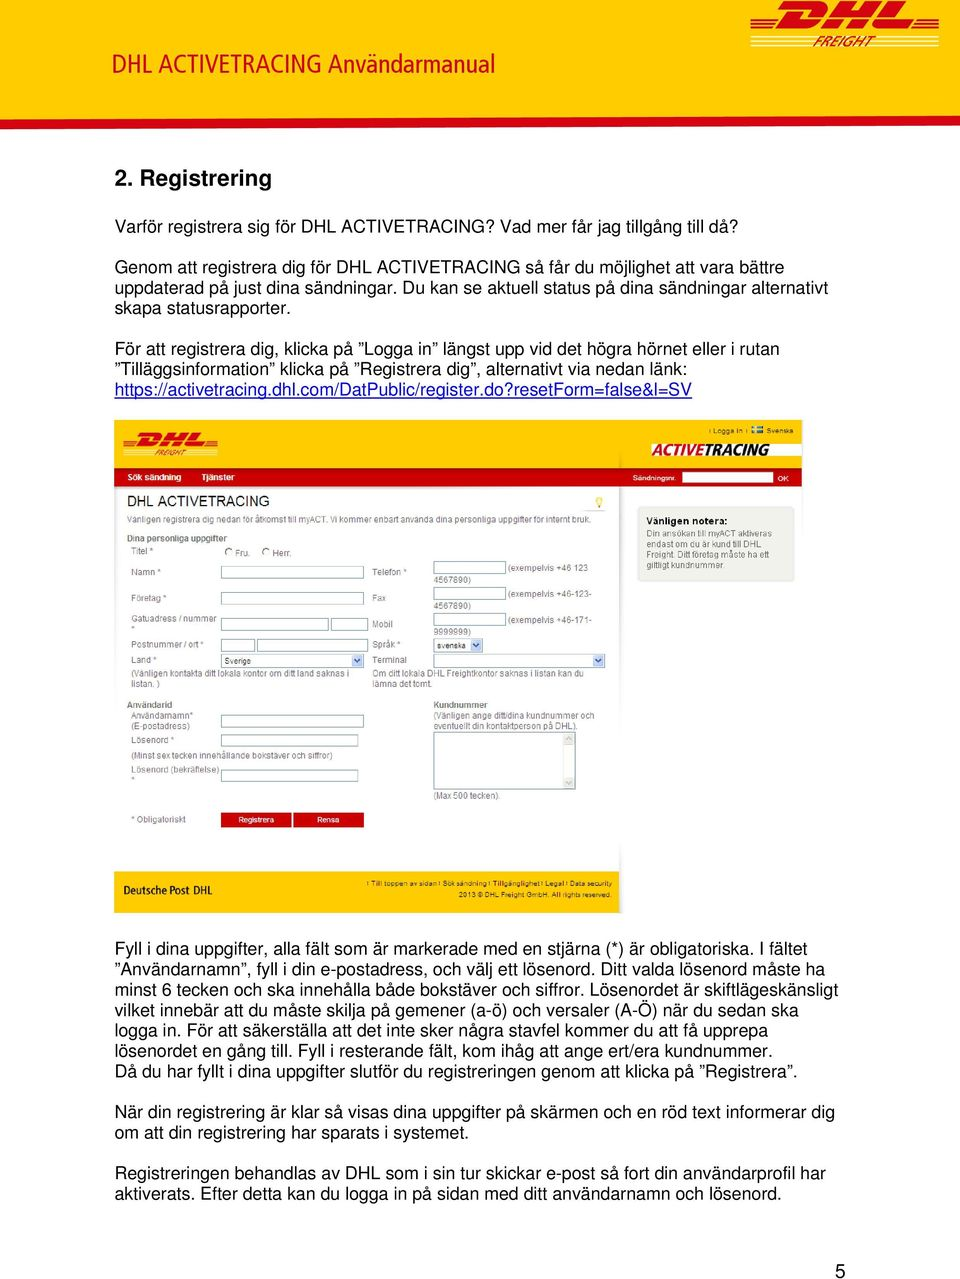 För att registrera dig, klicka på Logga in längst upp vid det högra hörnet eller i rutan Tilläggsinformation klicka på Registrera dig, alternativt via nedan länk: https://activetracing.dhl.